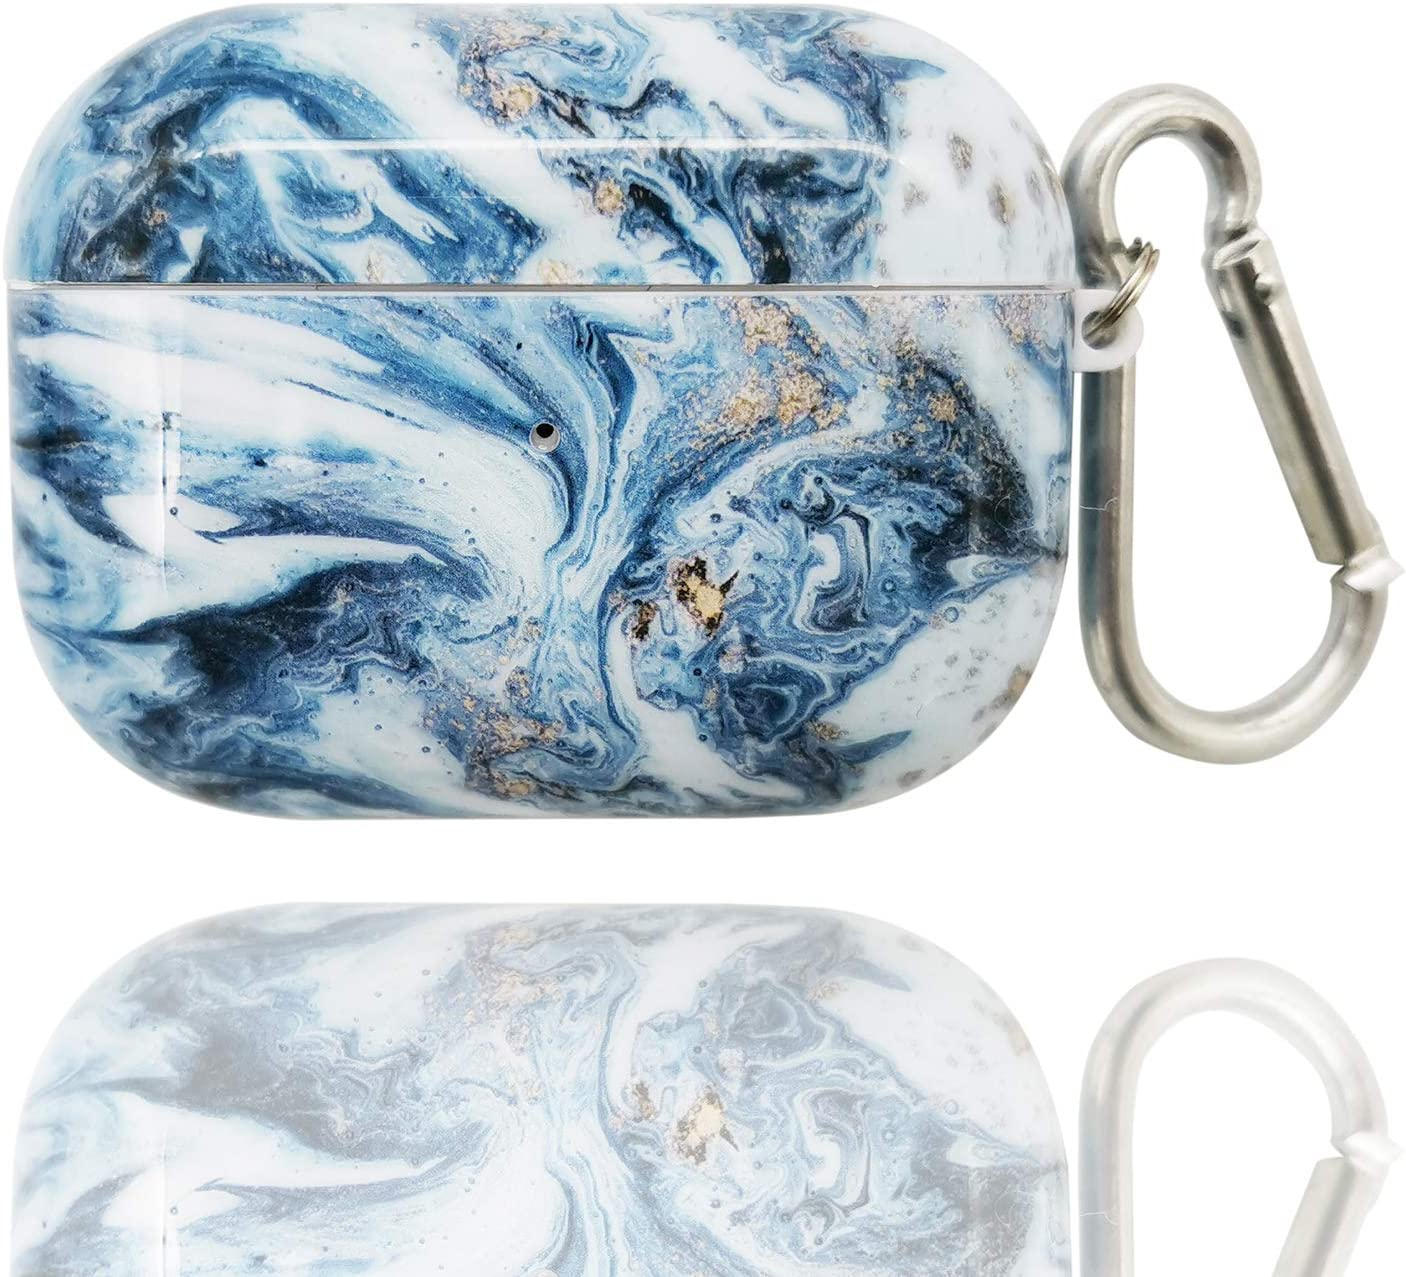 Ocean Waves Ice Blue TPU IMD Printing no dust fadeless AirPods Soft Case for Airpods 3 Cover Portable Cute Airpod Pro Case for Apple AirPods Pro Protective Shockproof Case with Keychain